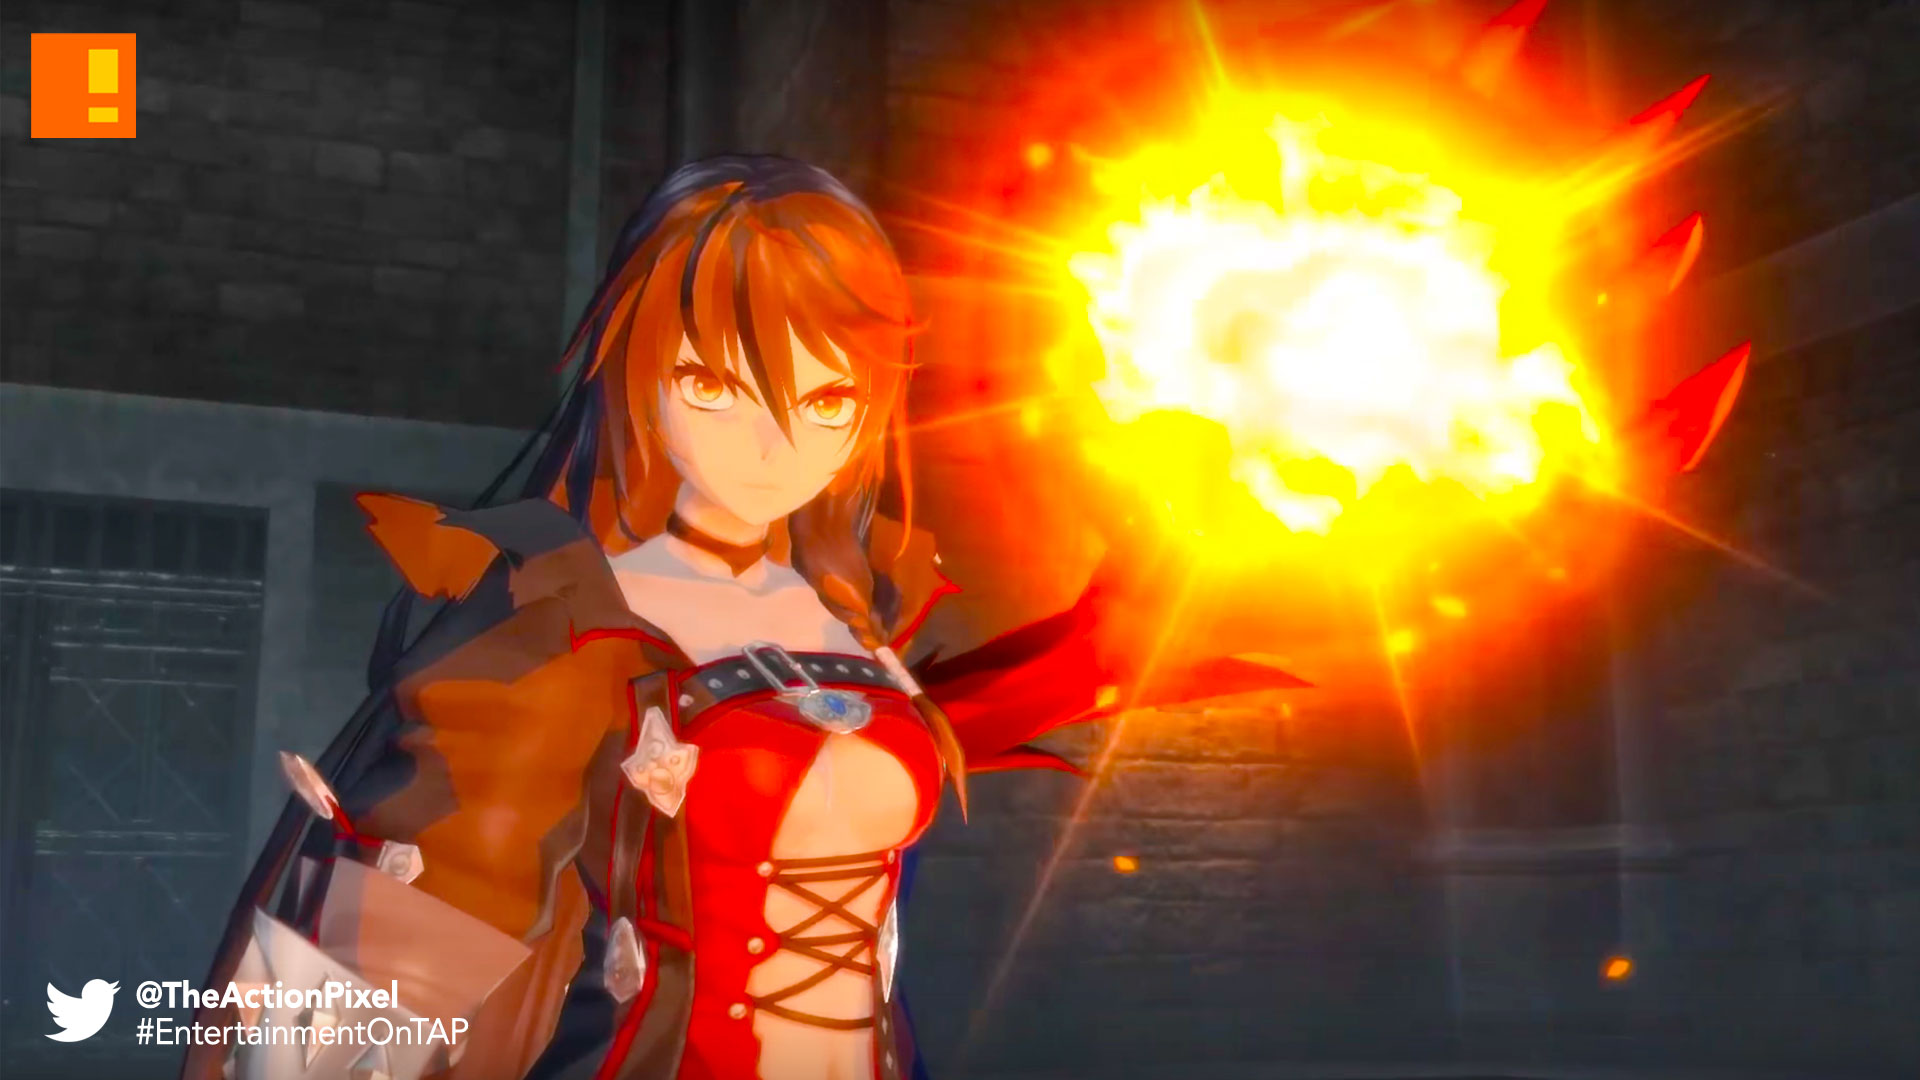 tales of berseria, bandai namco, launch trailer, velvet, the action pixel, entertainment on tap